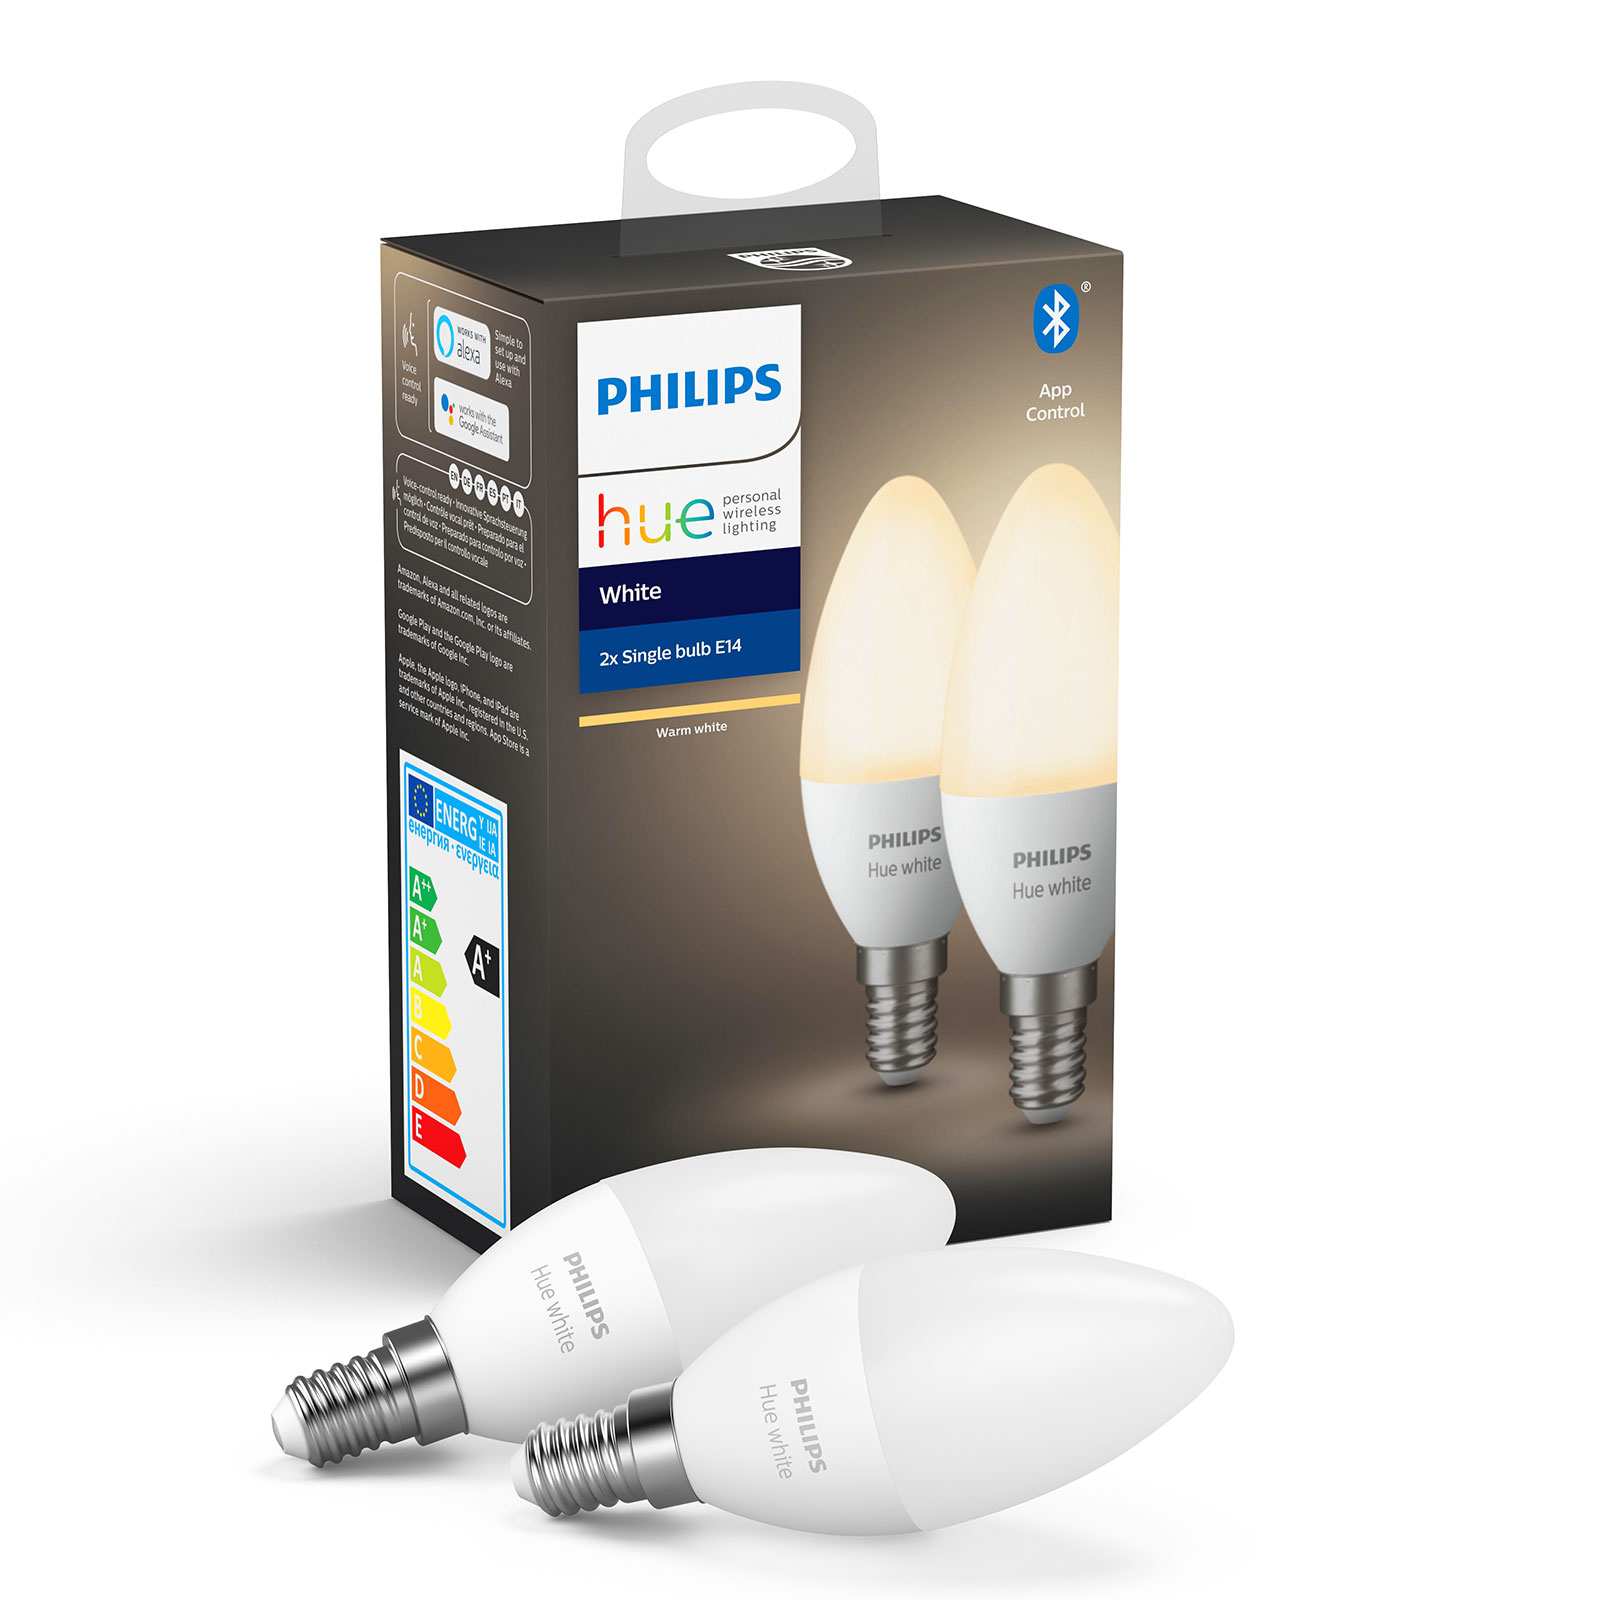 Philips Hue White 5,5W E14 LED a candela, set da 2